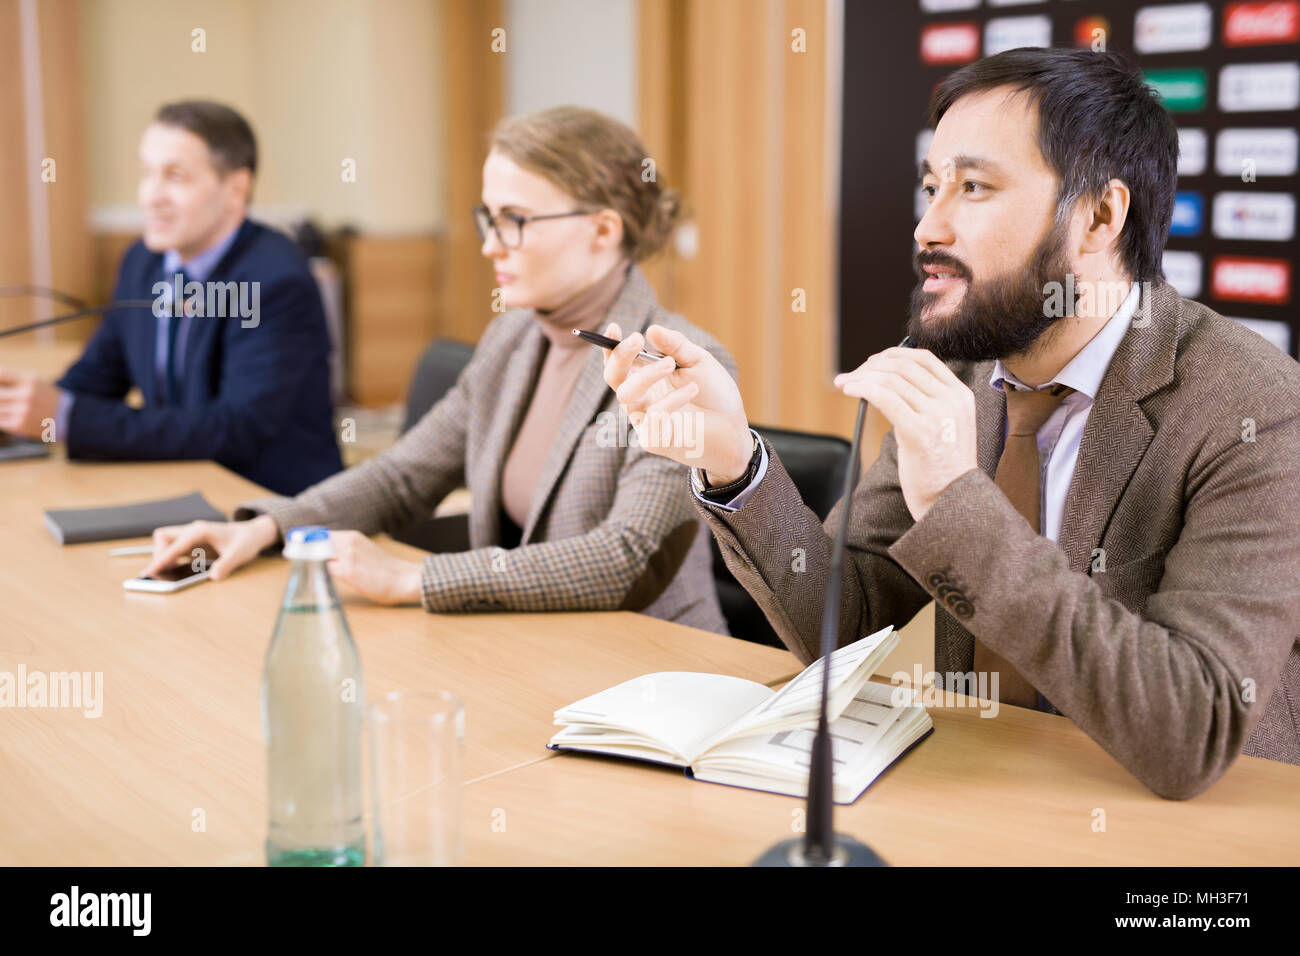 Asian Businessman at Press Conference - Stock Image